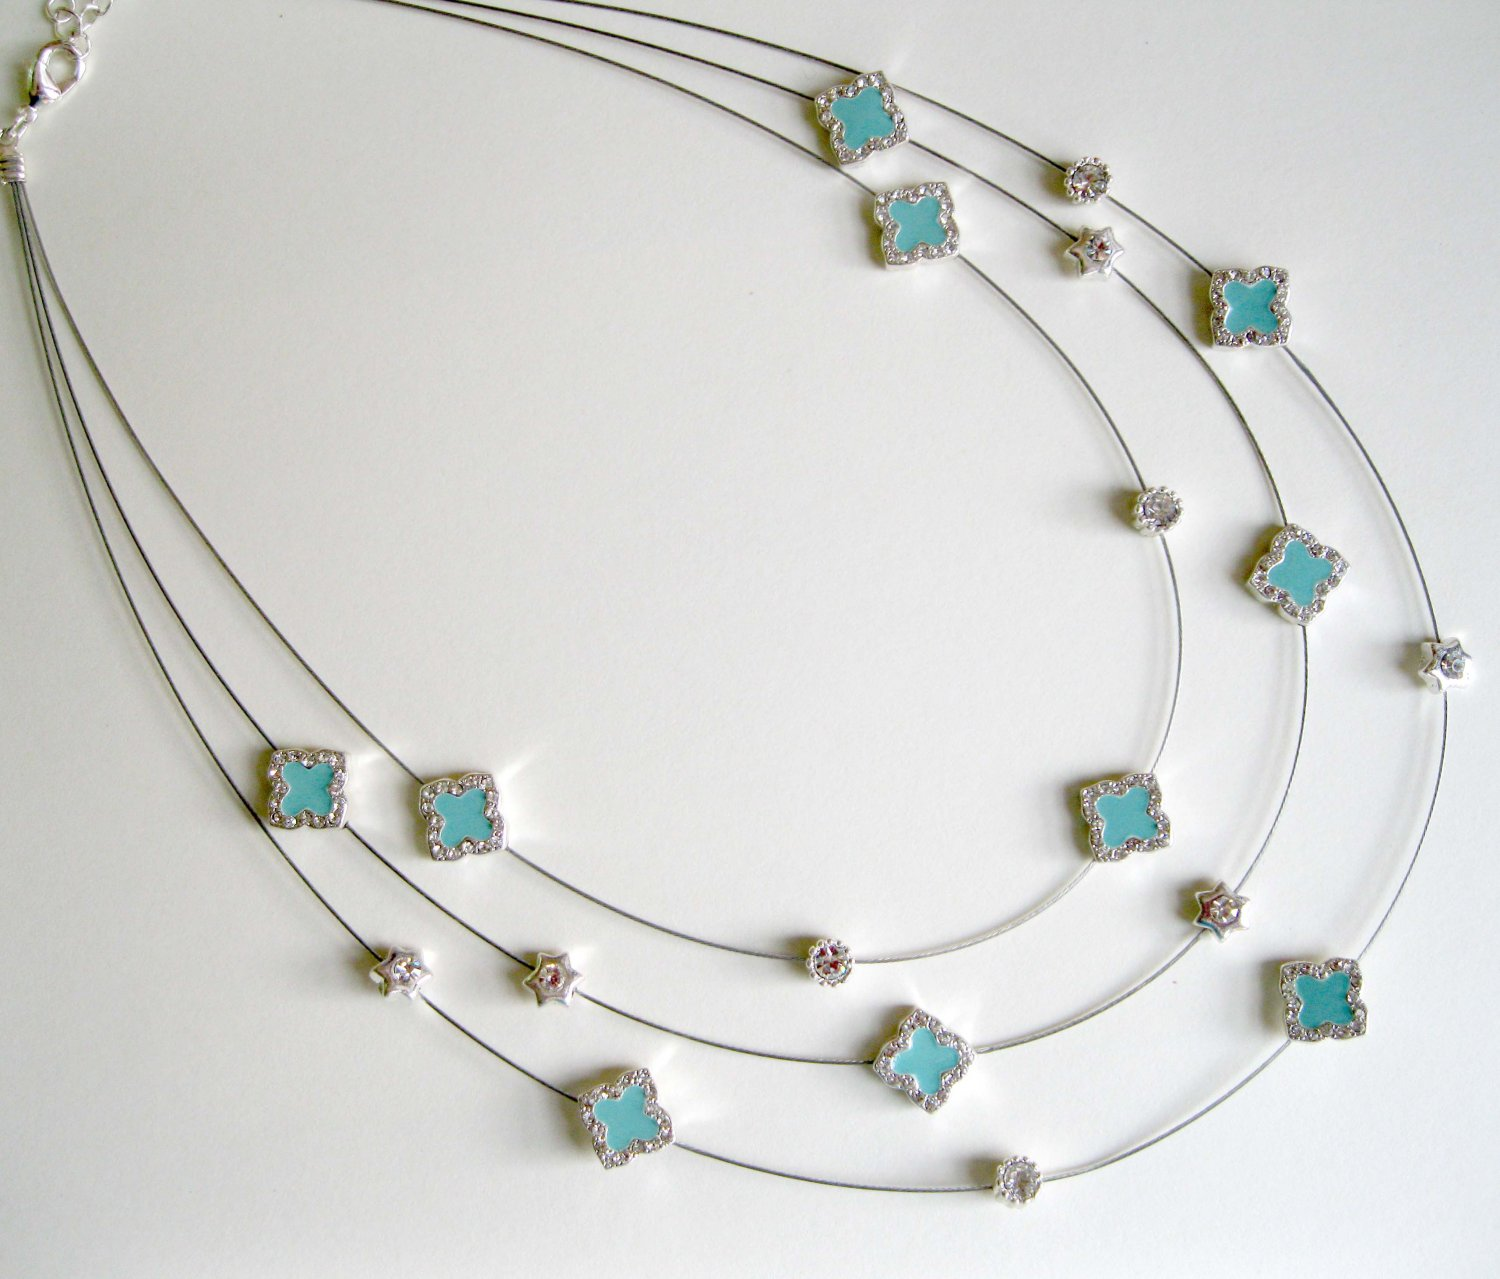 On Sale: Blue necklace 3 rows with crystals and cross